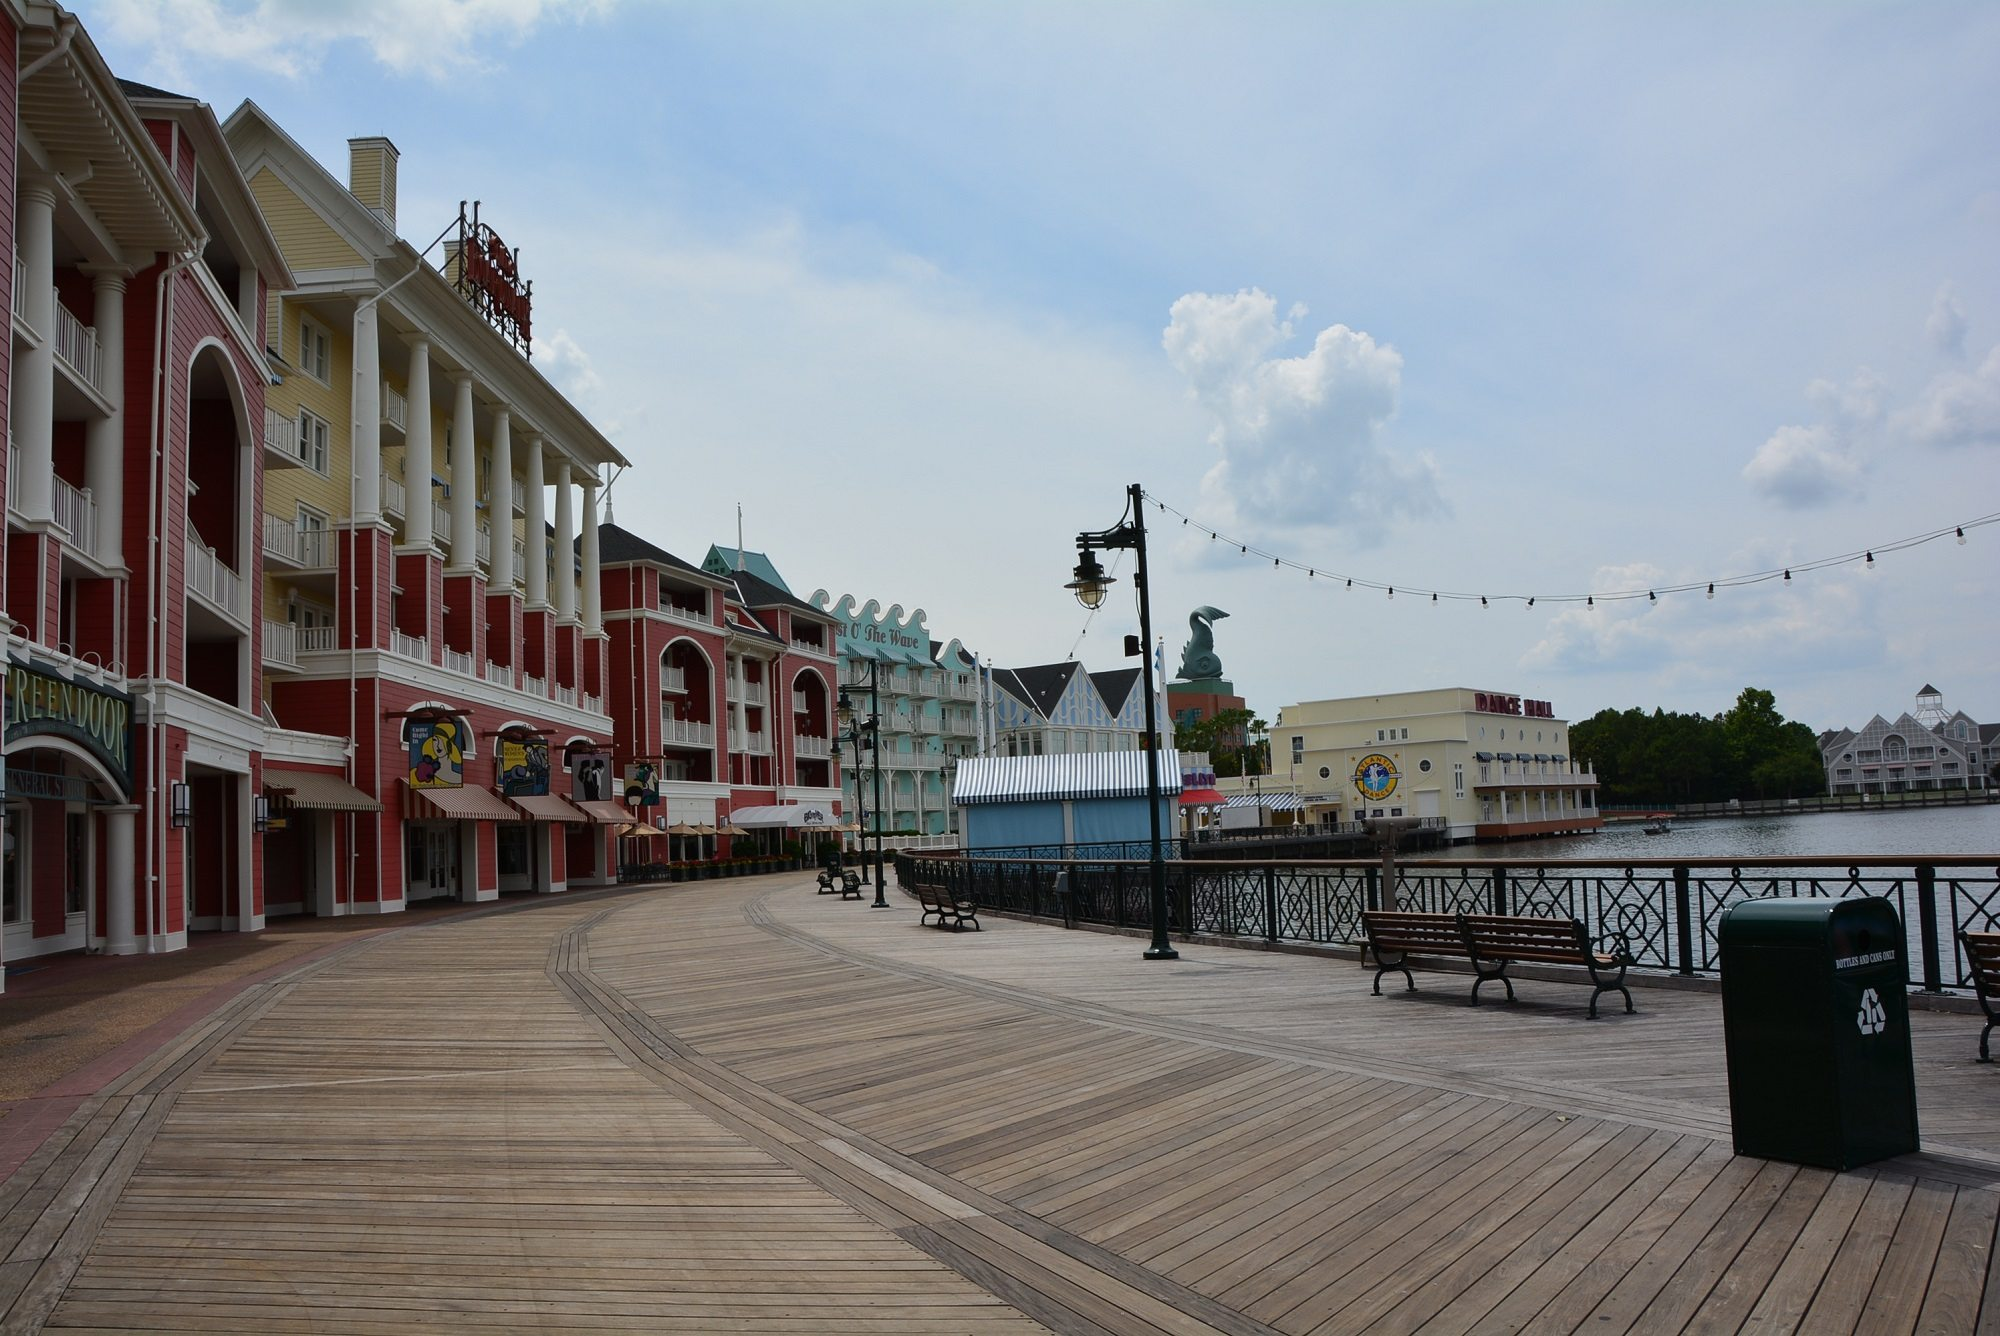 Stringed lights and brightly colored buildings line the boardwalk at Disney's Boardwalk Villas